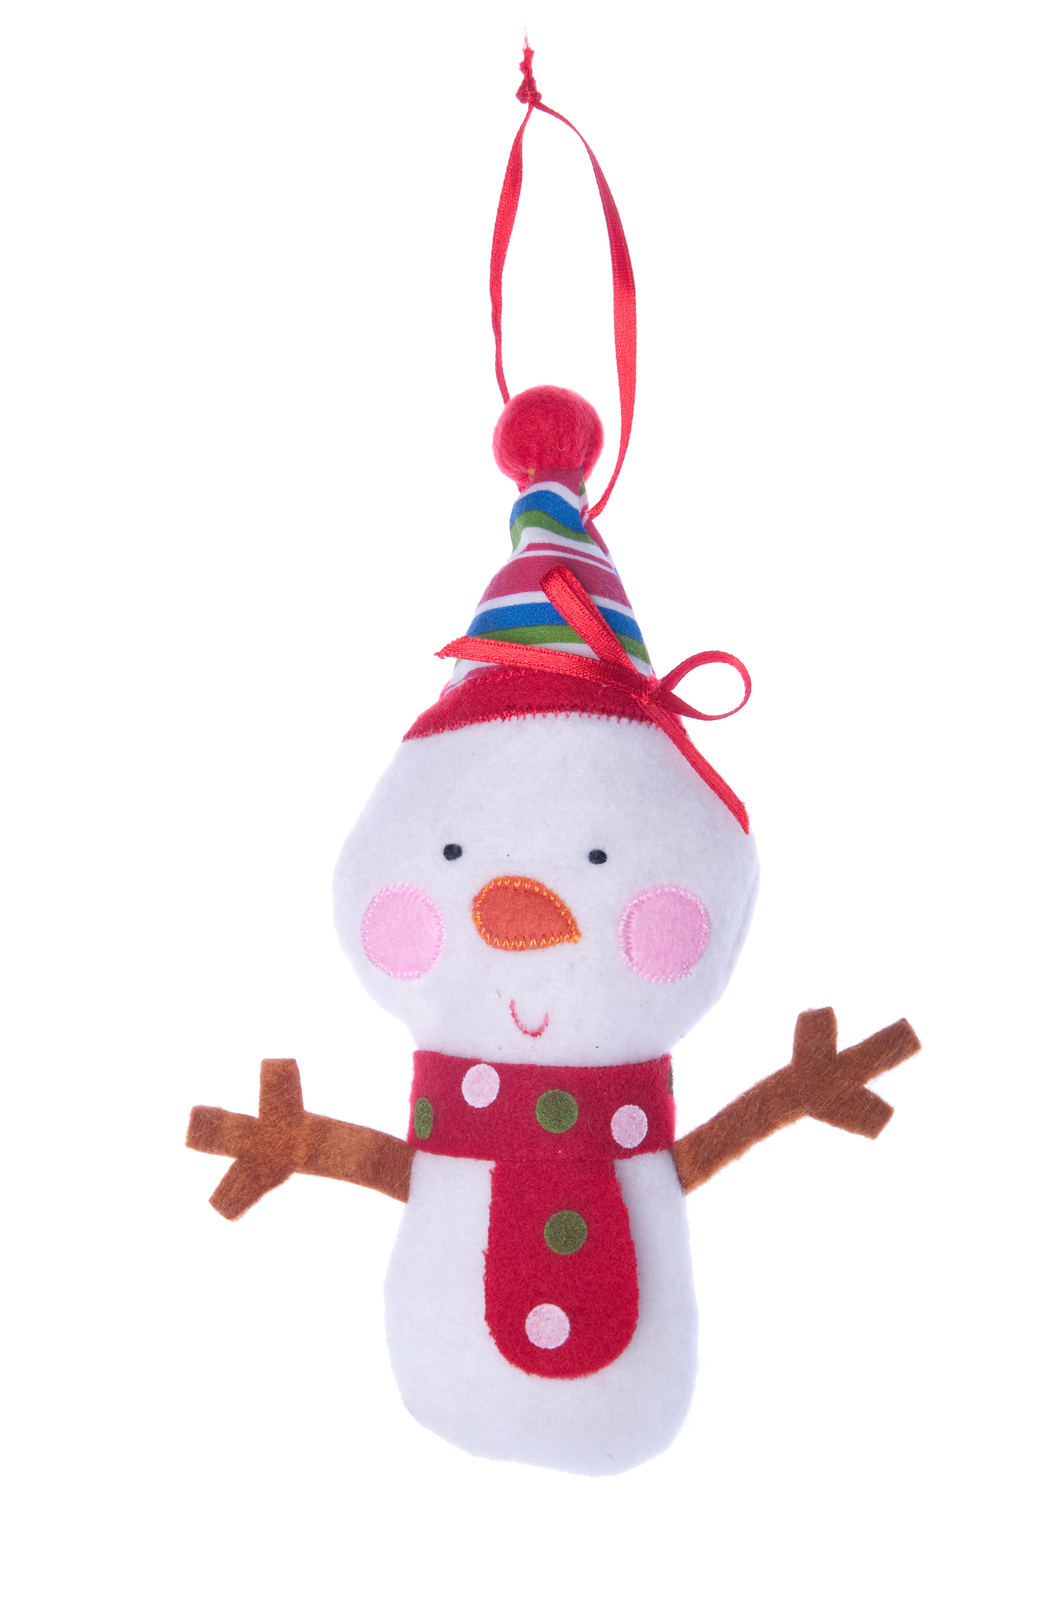 Snowman decoration 7jnar4